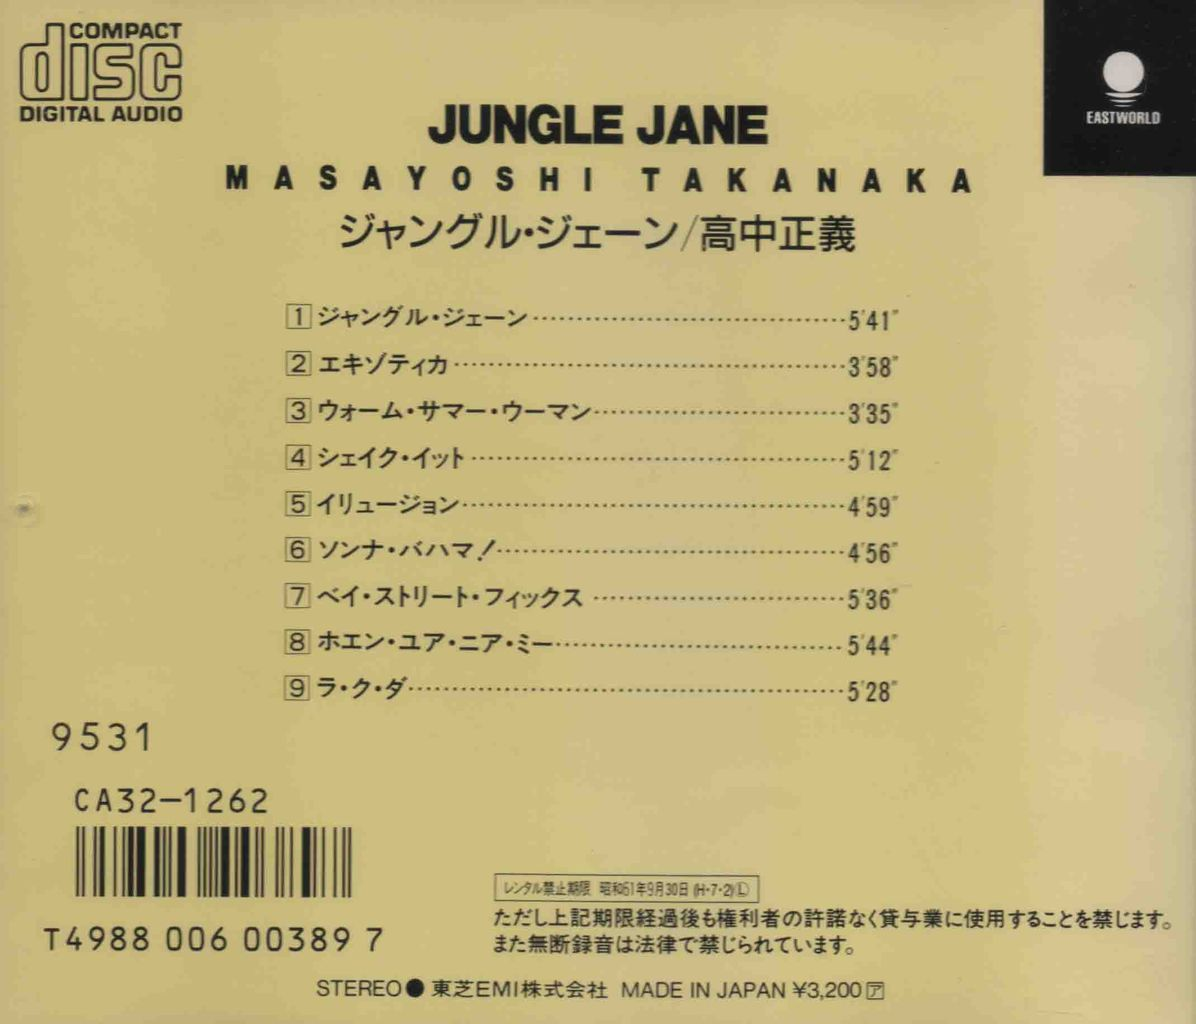 JUNGLE JANE-2